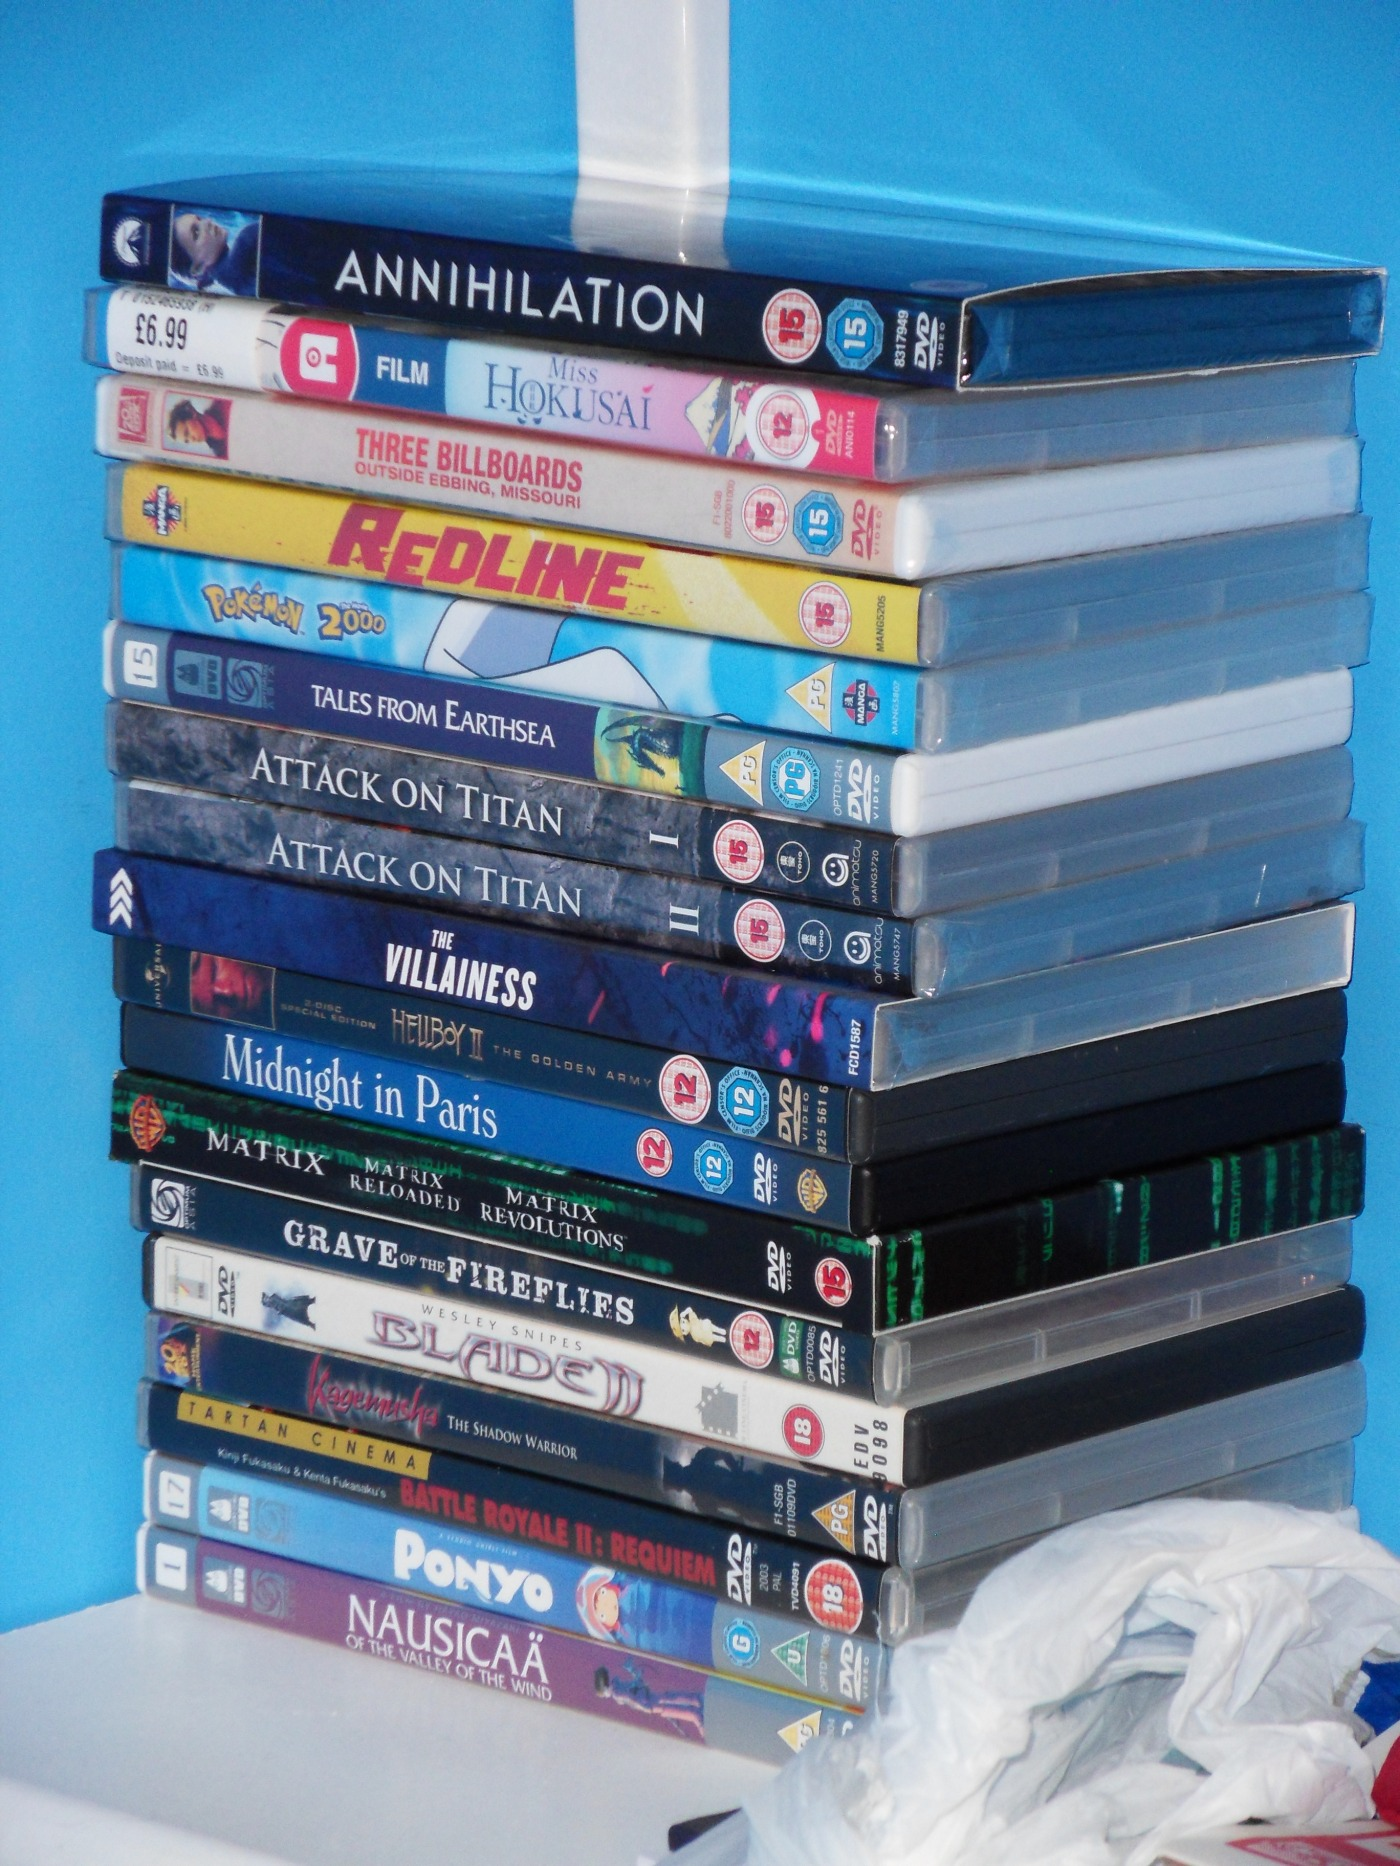 Unwatched DVD's